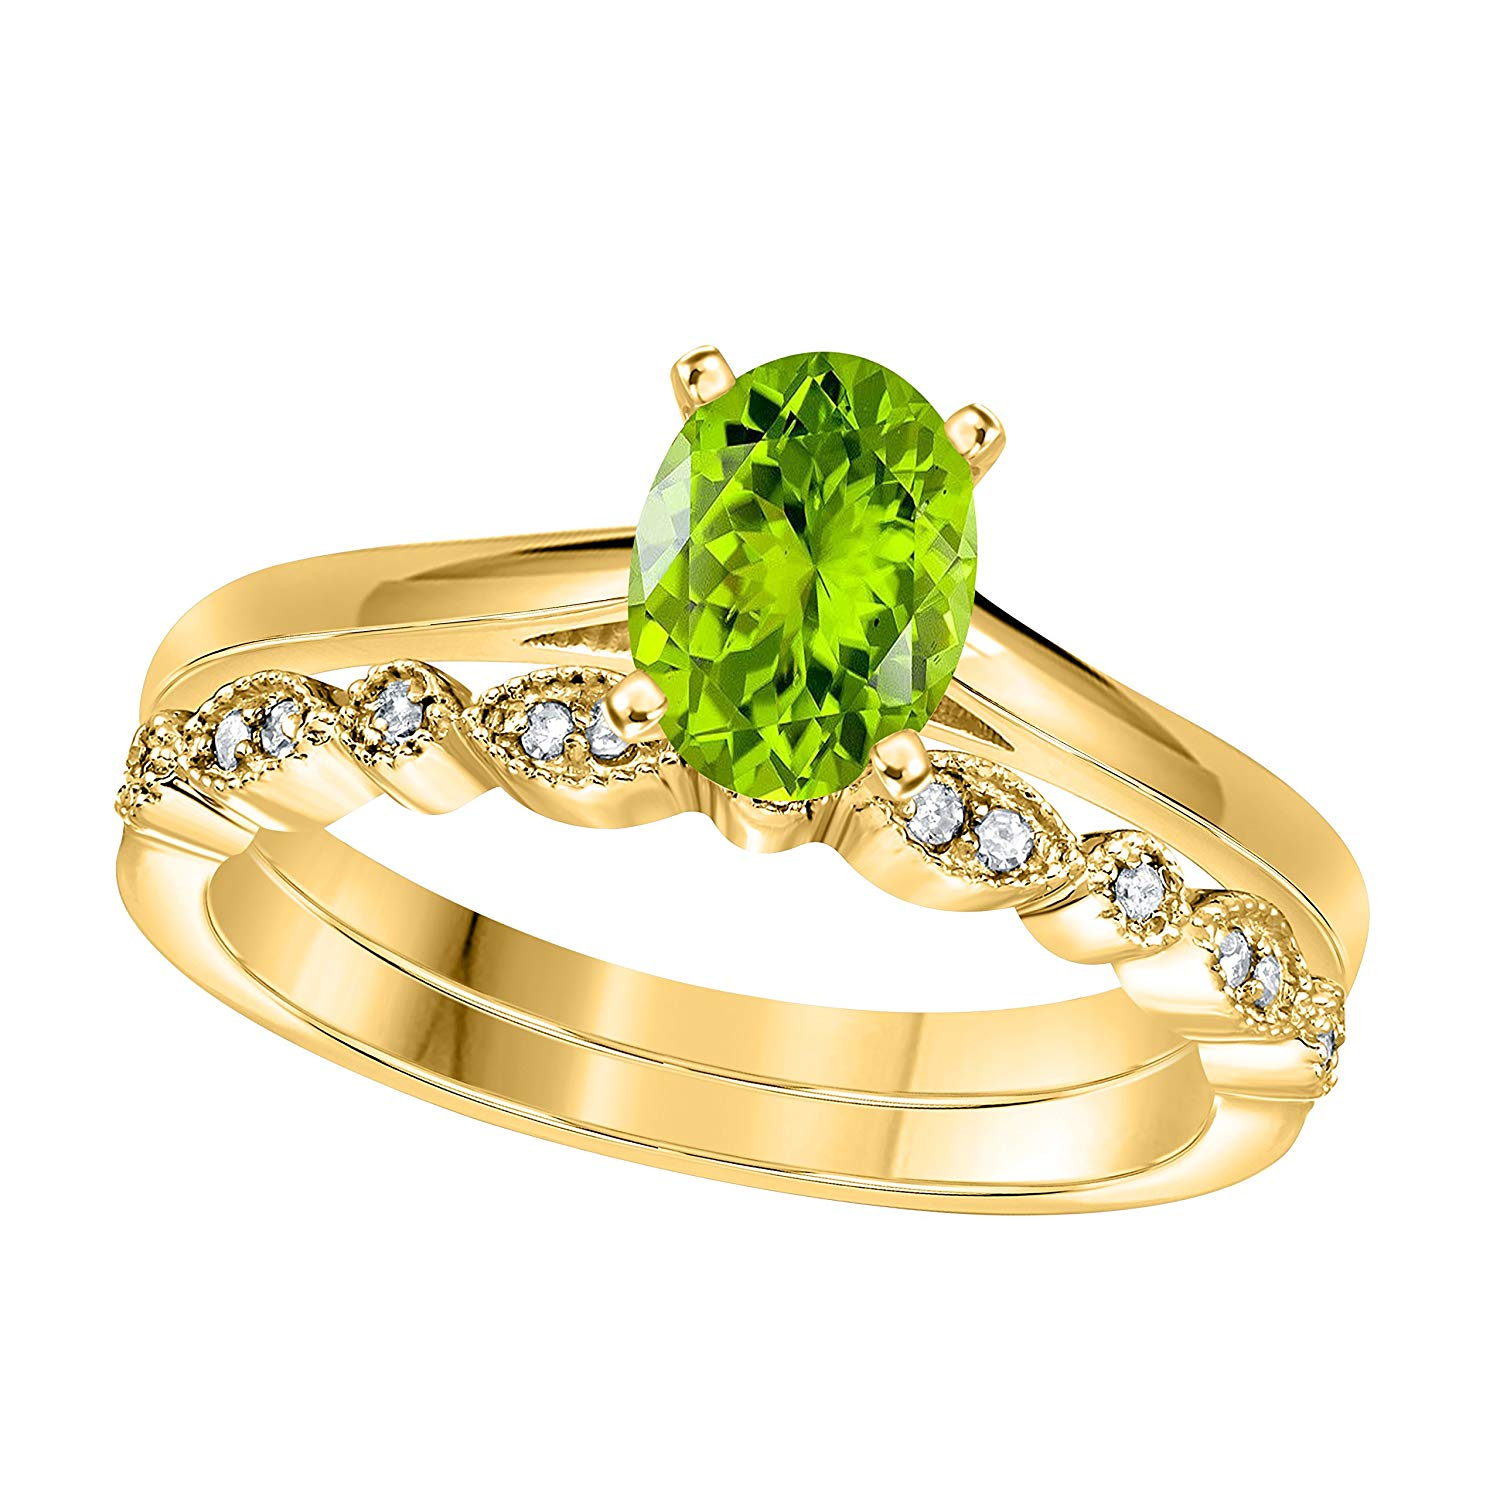 Jewelryhub 1.00 Ct Oval & Round Cut Green Peridot & White CZ Diamond 14k Yellow Gold Plated Sterling Silver Art Deco Vintage Design Wedding Bridal Ring Wedding Ring Set Engagement Ring Sets Size 5-10